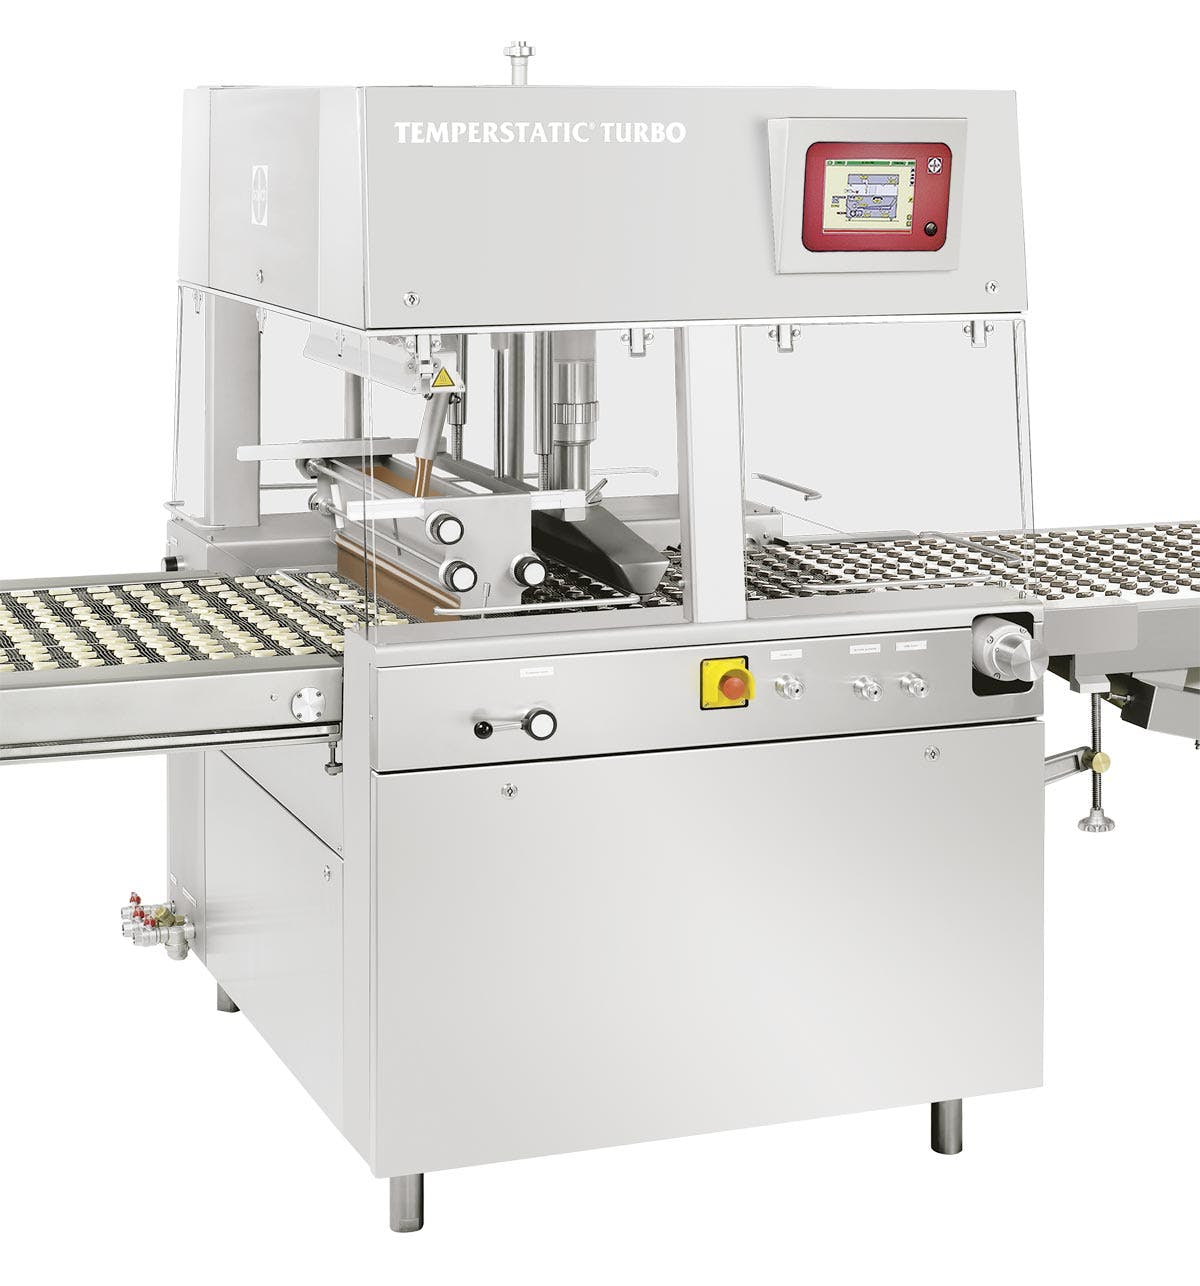 Sollich Temperstatic Turbo TTS/TEM Chocolate enrober sold by Sollich North America